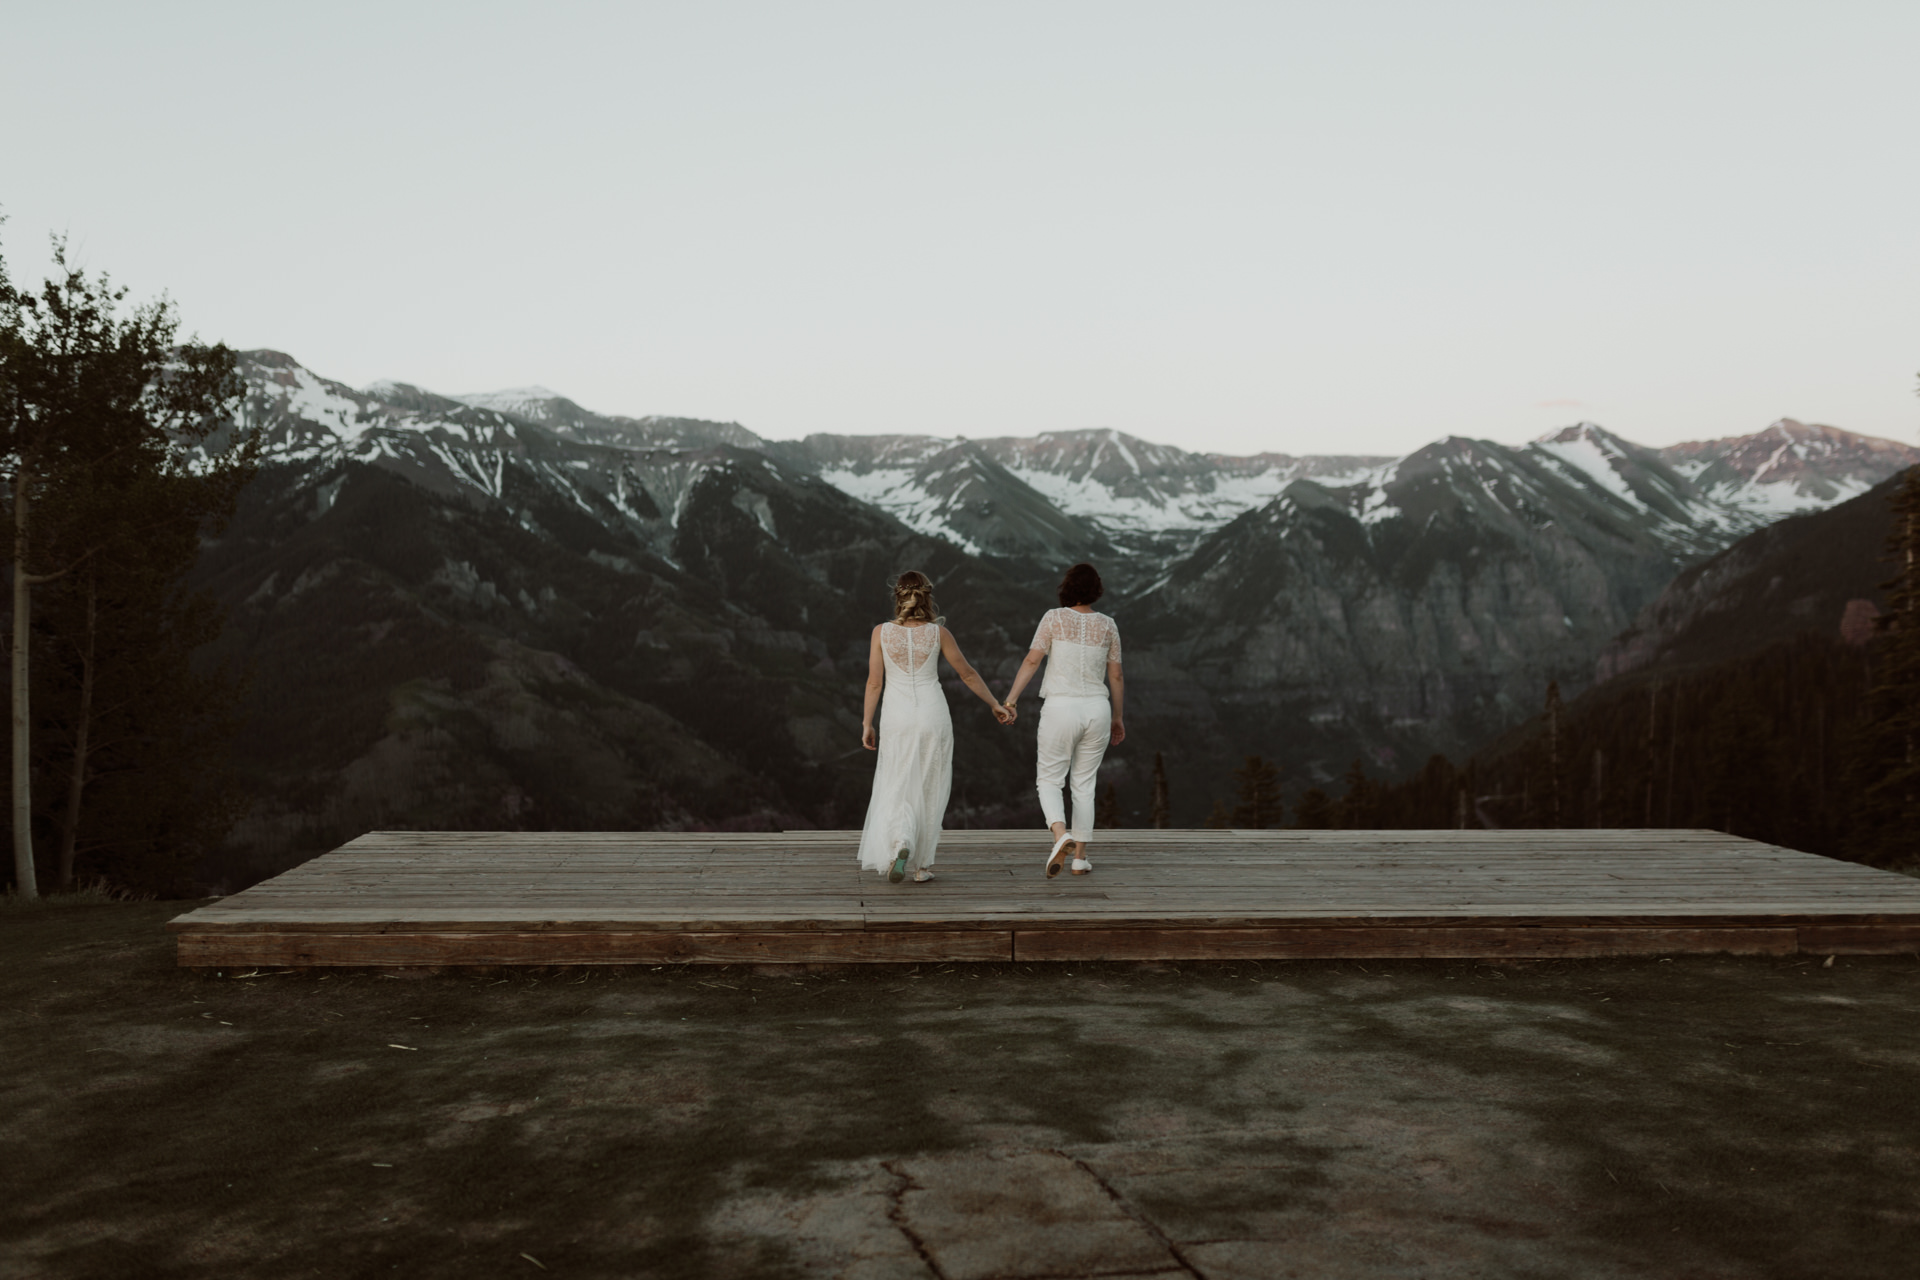 cedarandpines-intimate-san-sofia-telluride-colorado-wedding-57.jpg